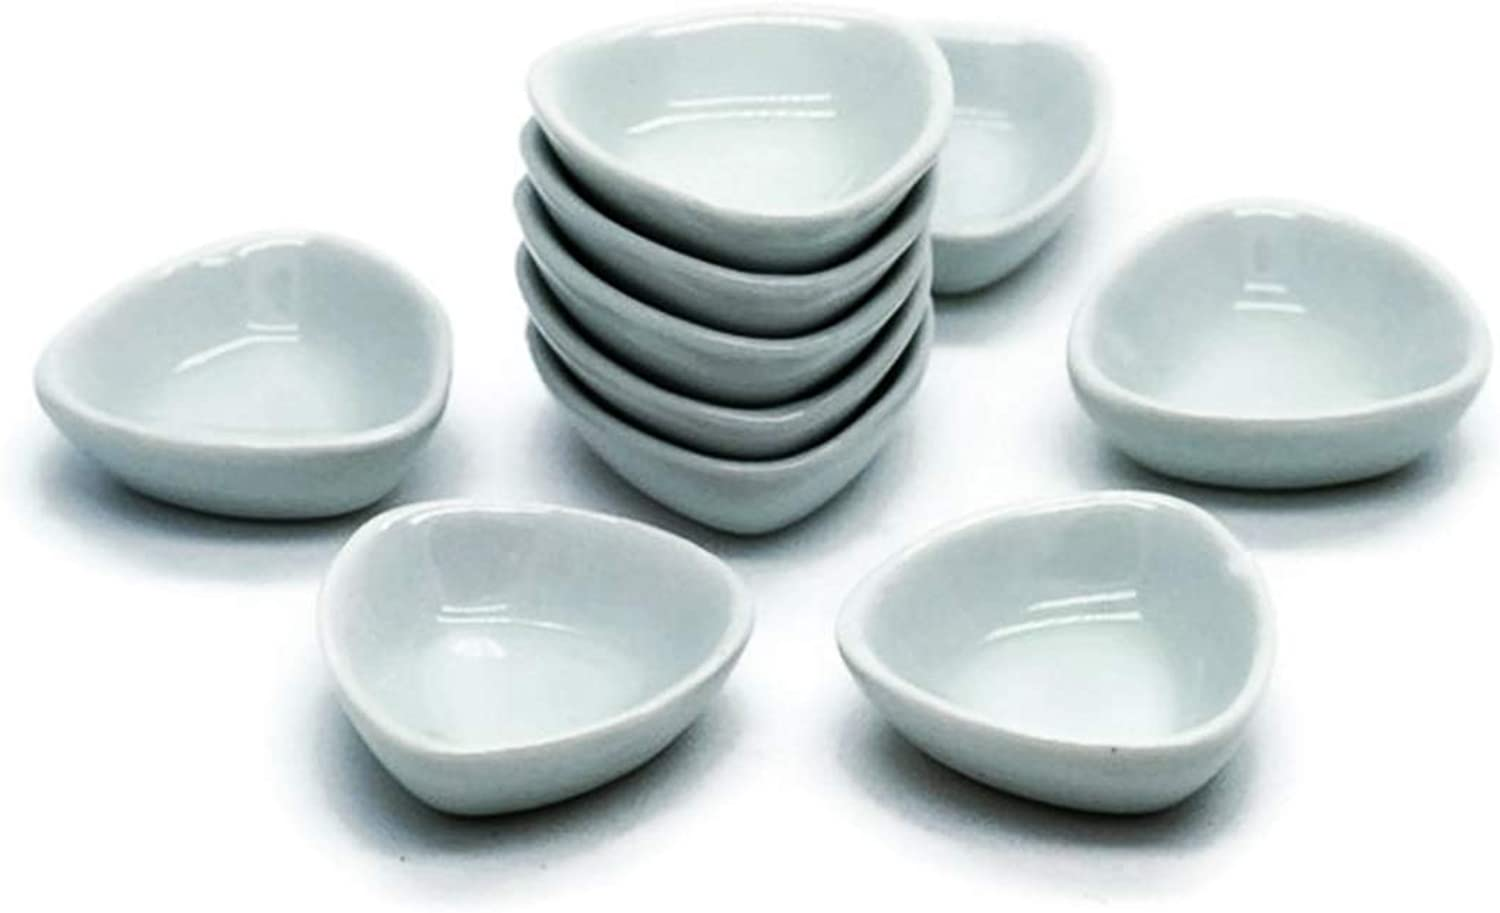 20 White Cearmic Plate Dish Bowl Dollhouse Miniatures Food Kitchen No 26 by Cool Price